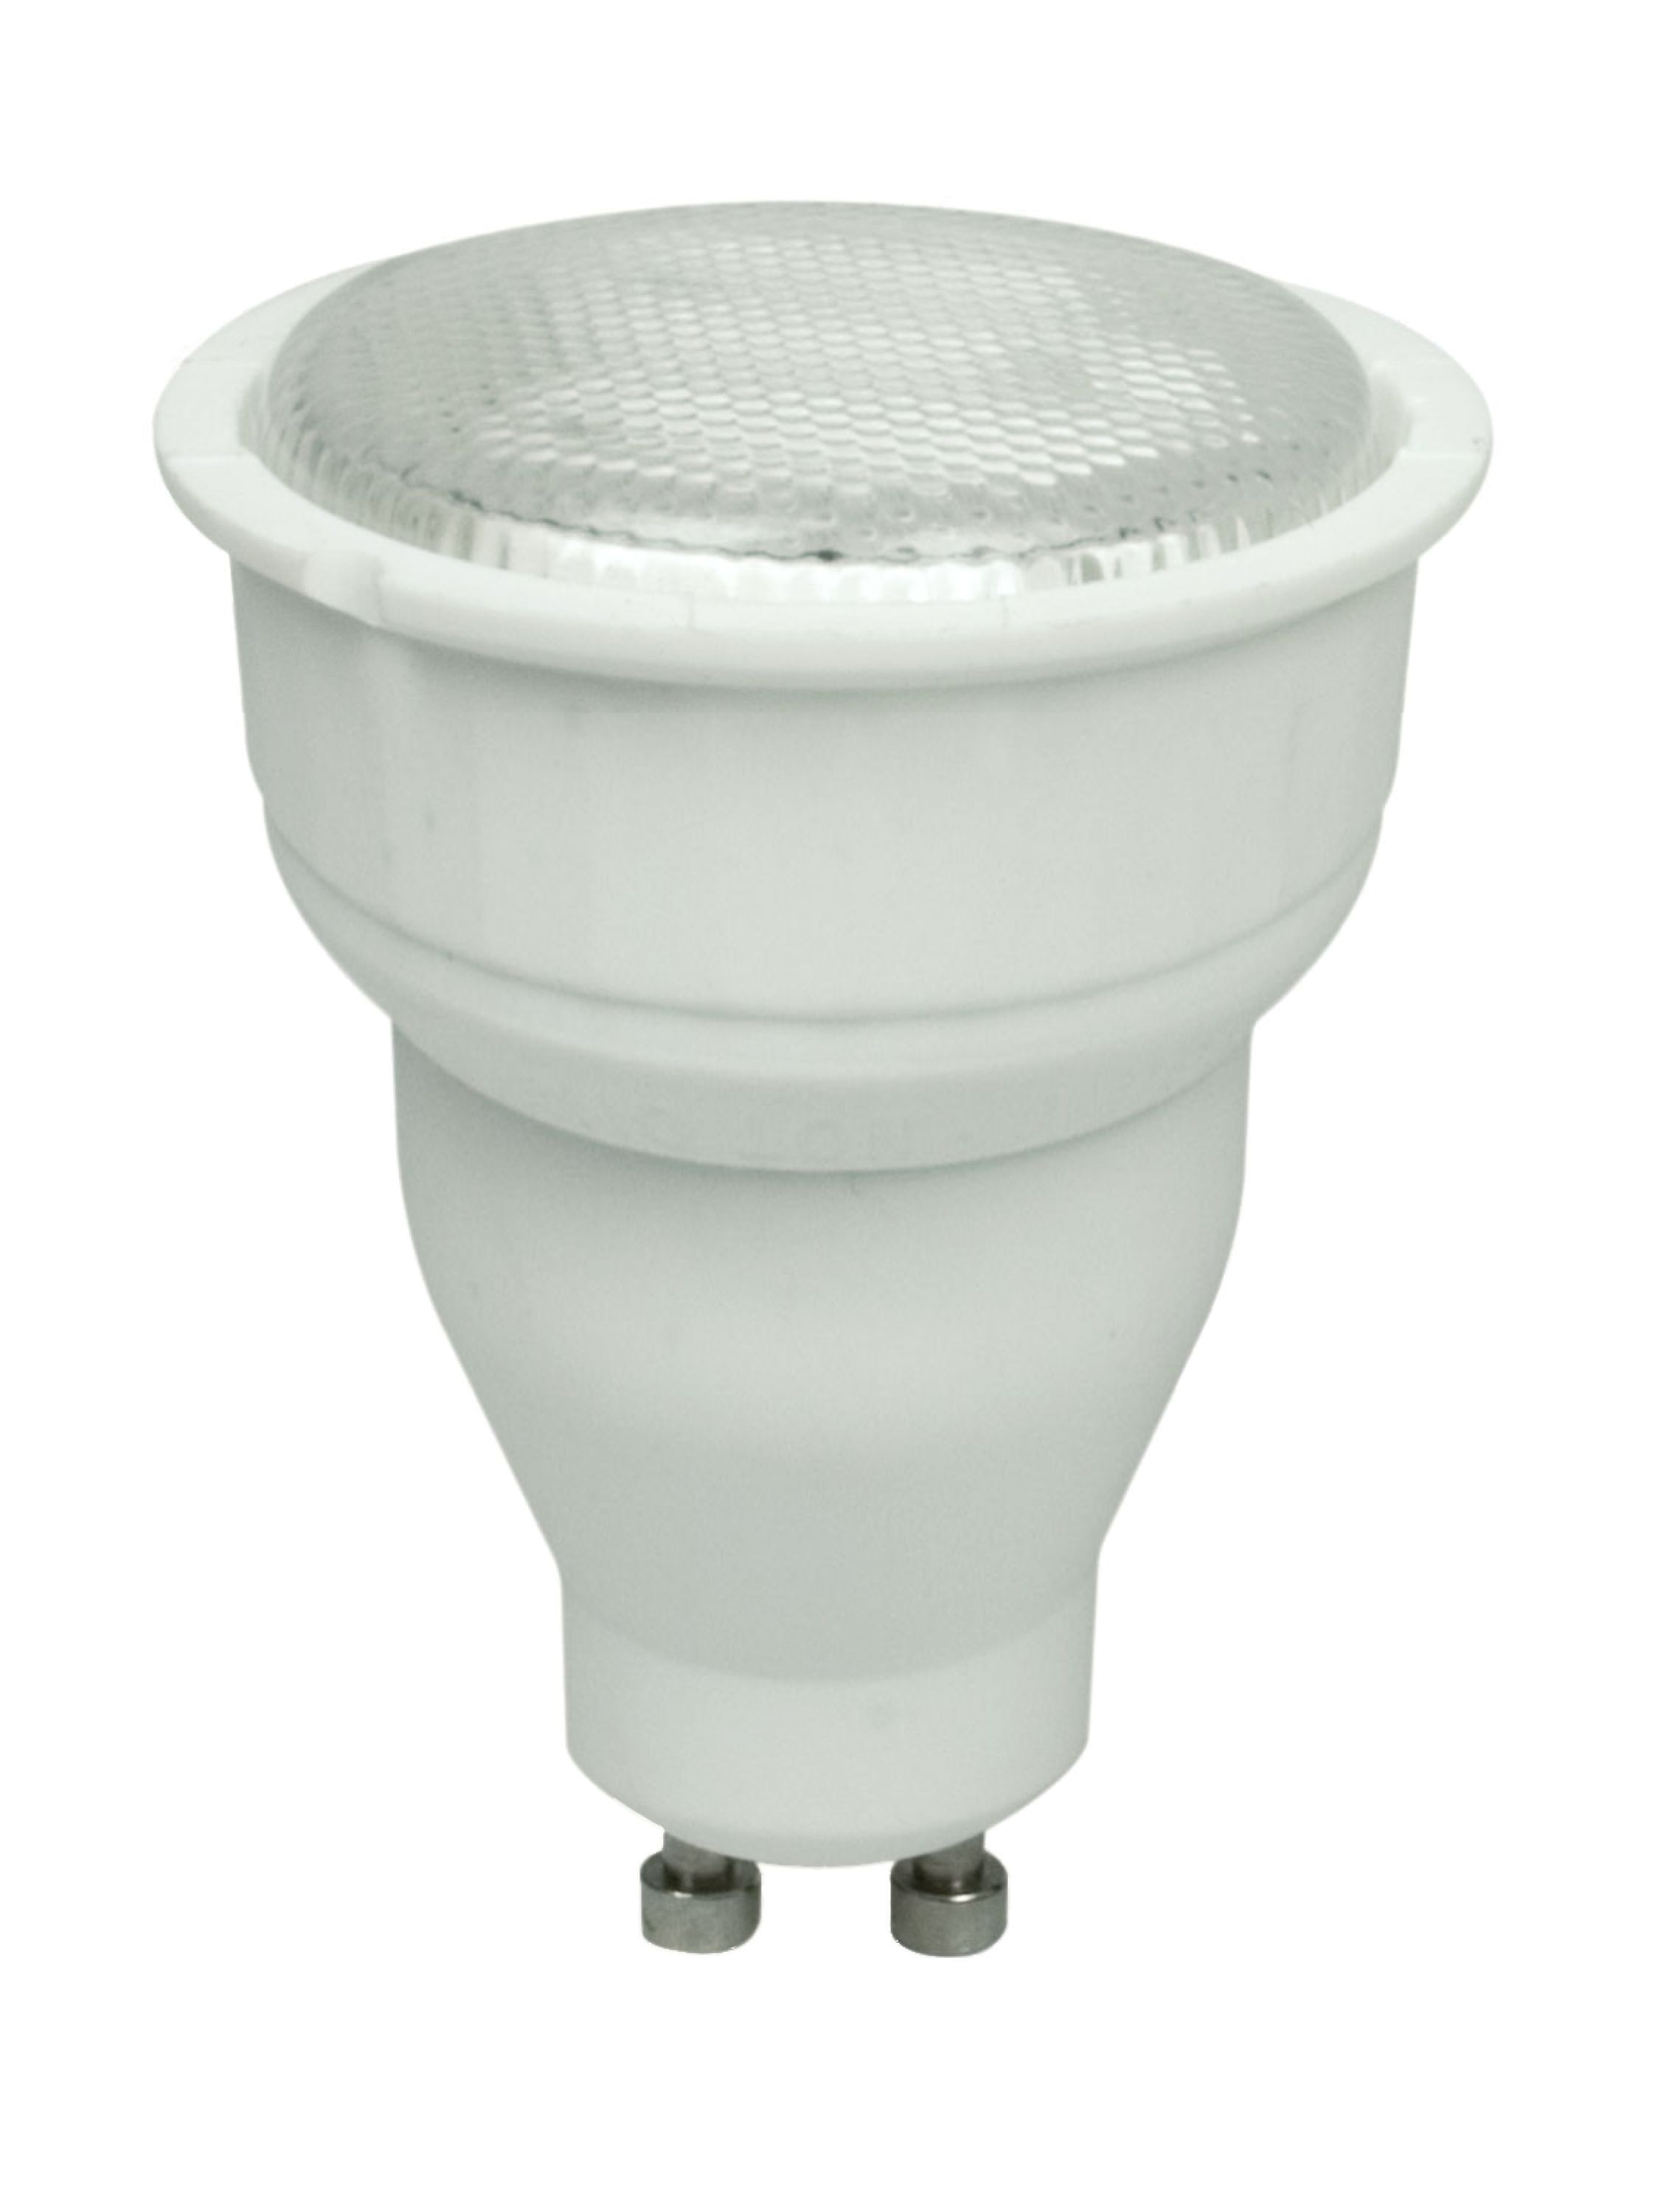 4.7w GU10 LED spot bulb (4000k, non dimmable, 36° beam, 450lm =58w)